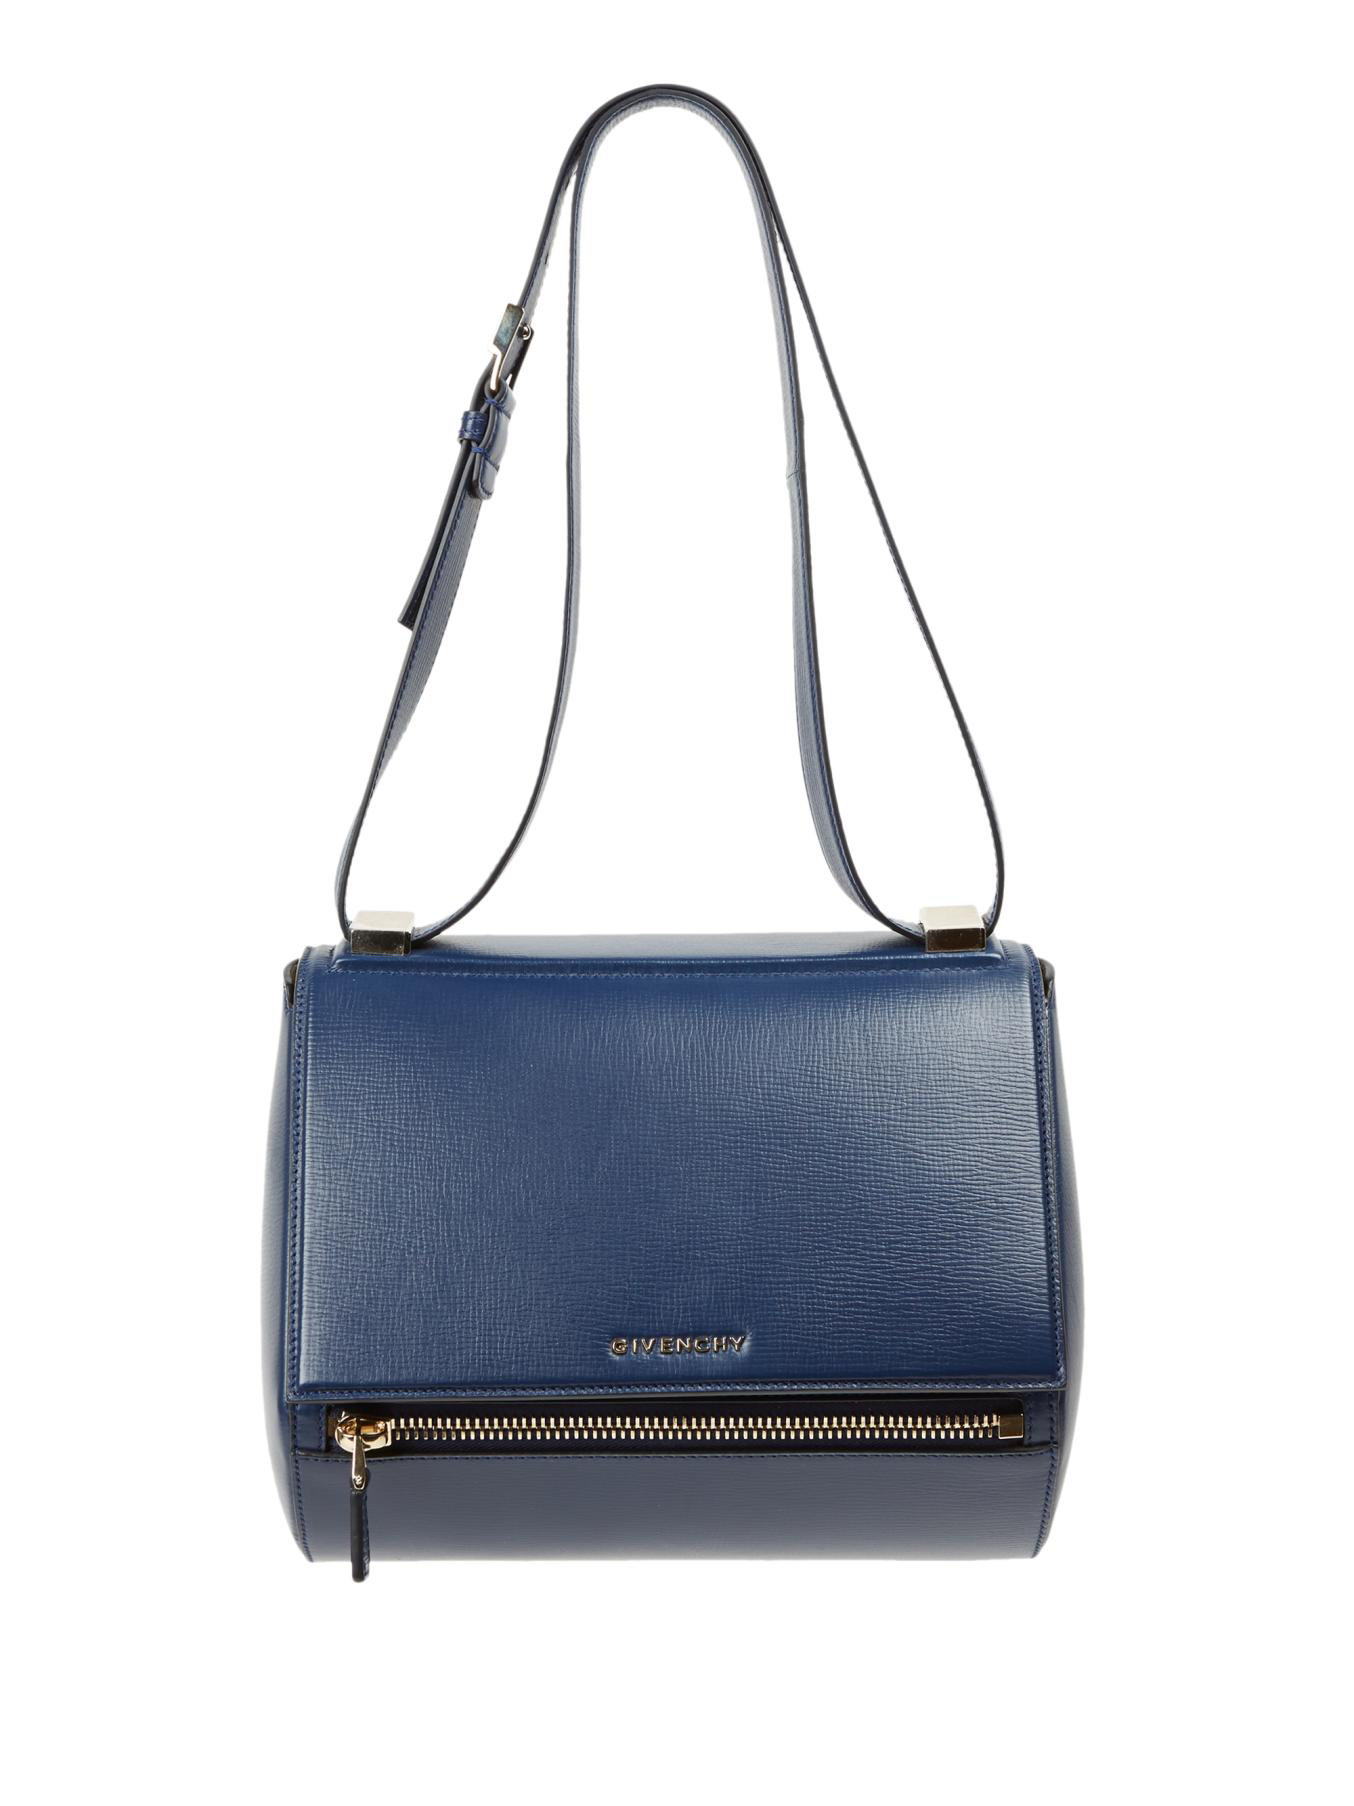 66875ebf916 Gallery. Previously sold at: Saks Fifth Avenue · Women's Box Bags Women's Givenchy  Pandora